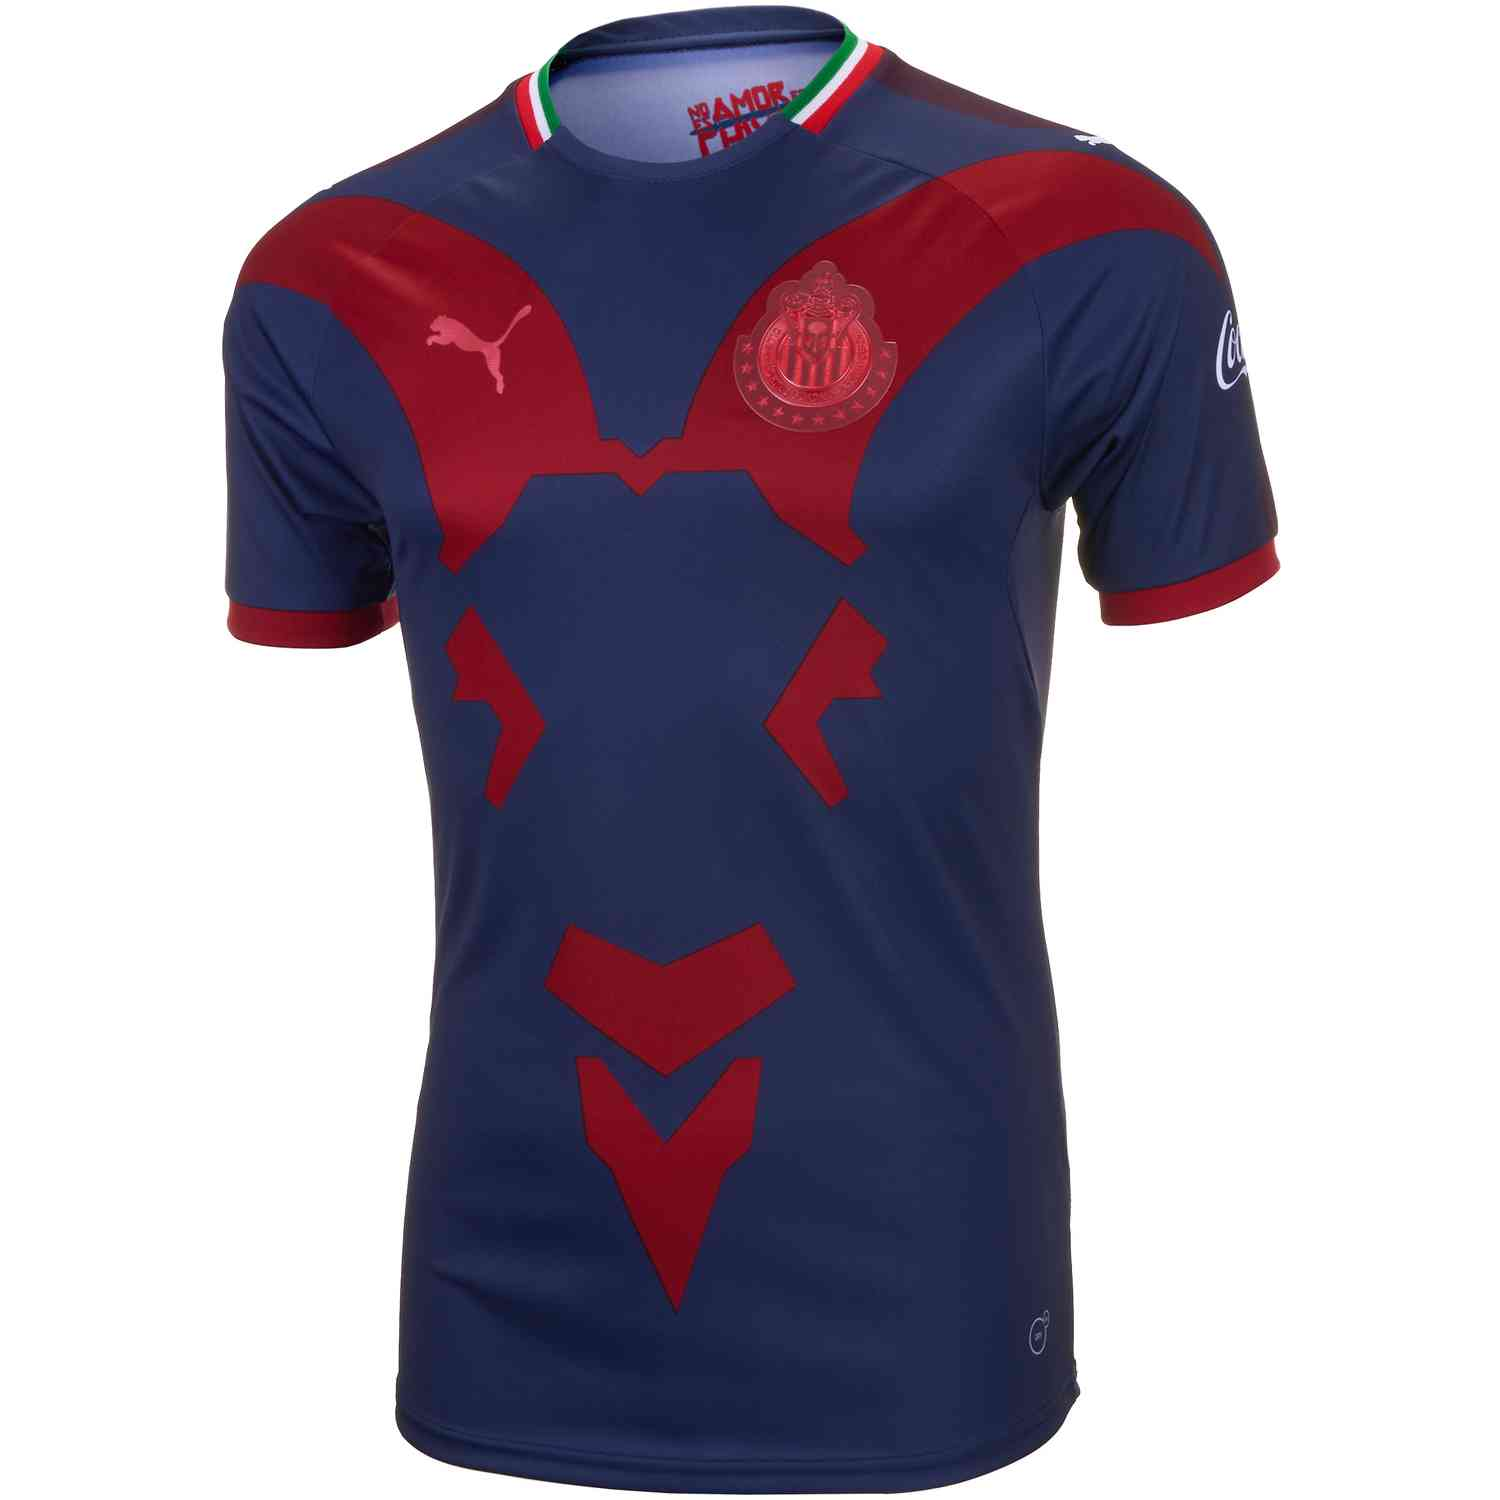 quality design 43cde 9edab 2019 Puma Chivas 3rd Jersey – Peacoat/Chili Pepper